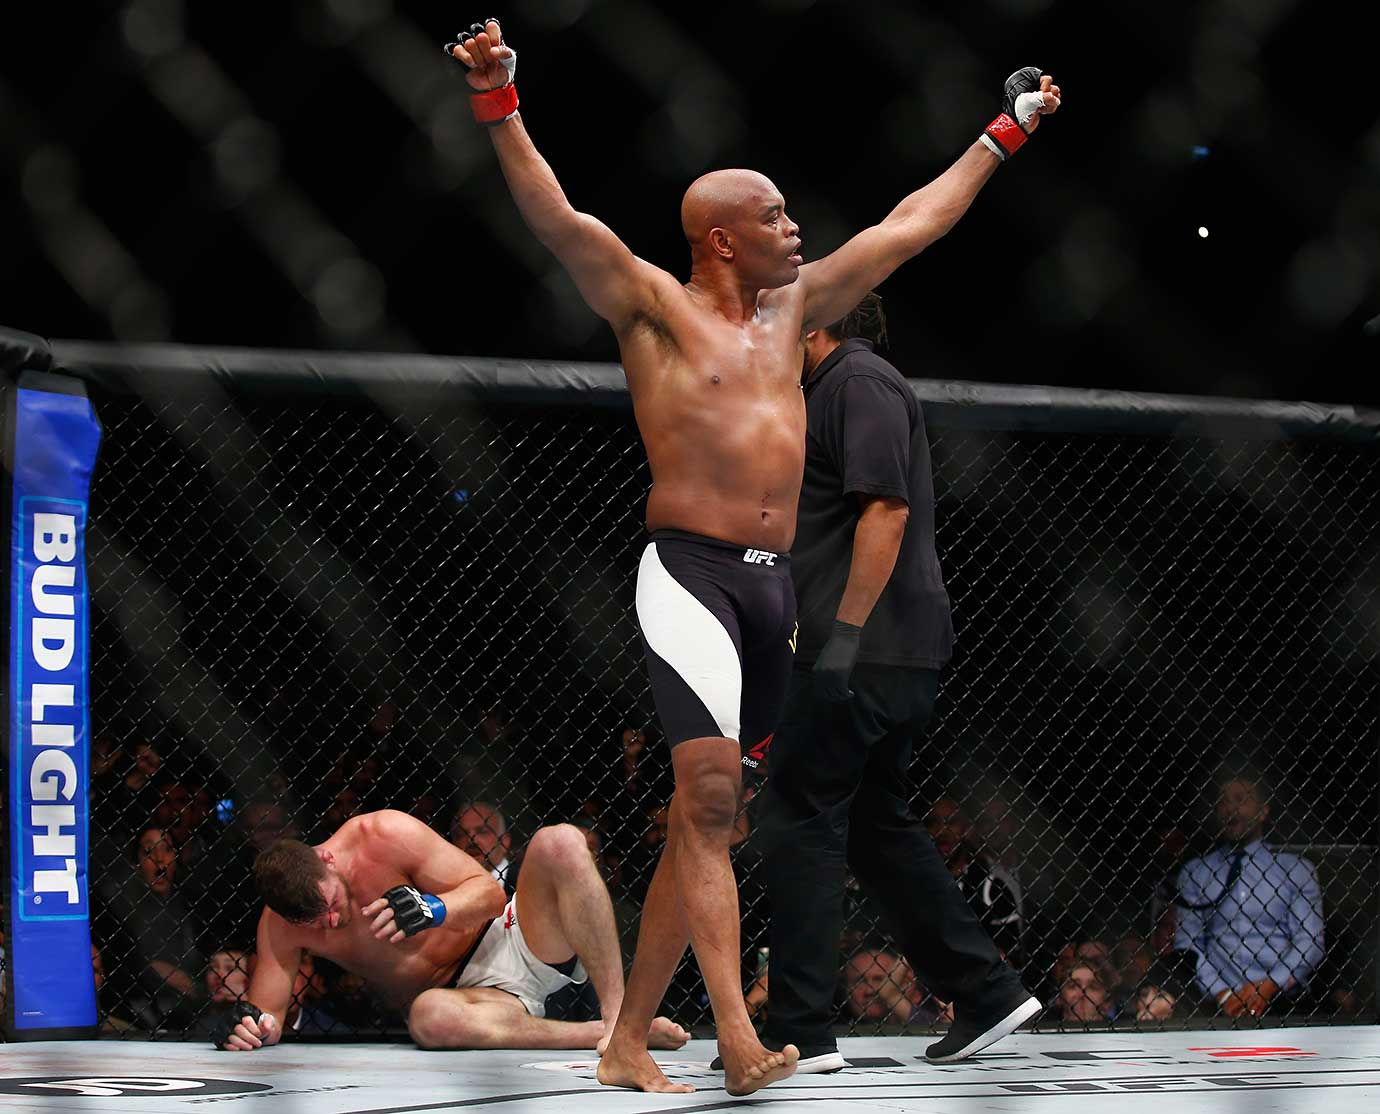 Anderson Silva of Brazil starts to celebrate, believing incorrectly that he had knocked out Michael Bisping.